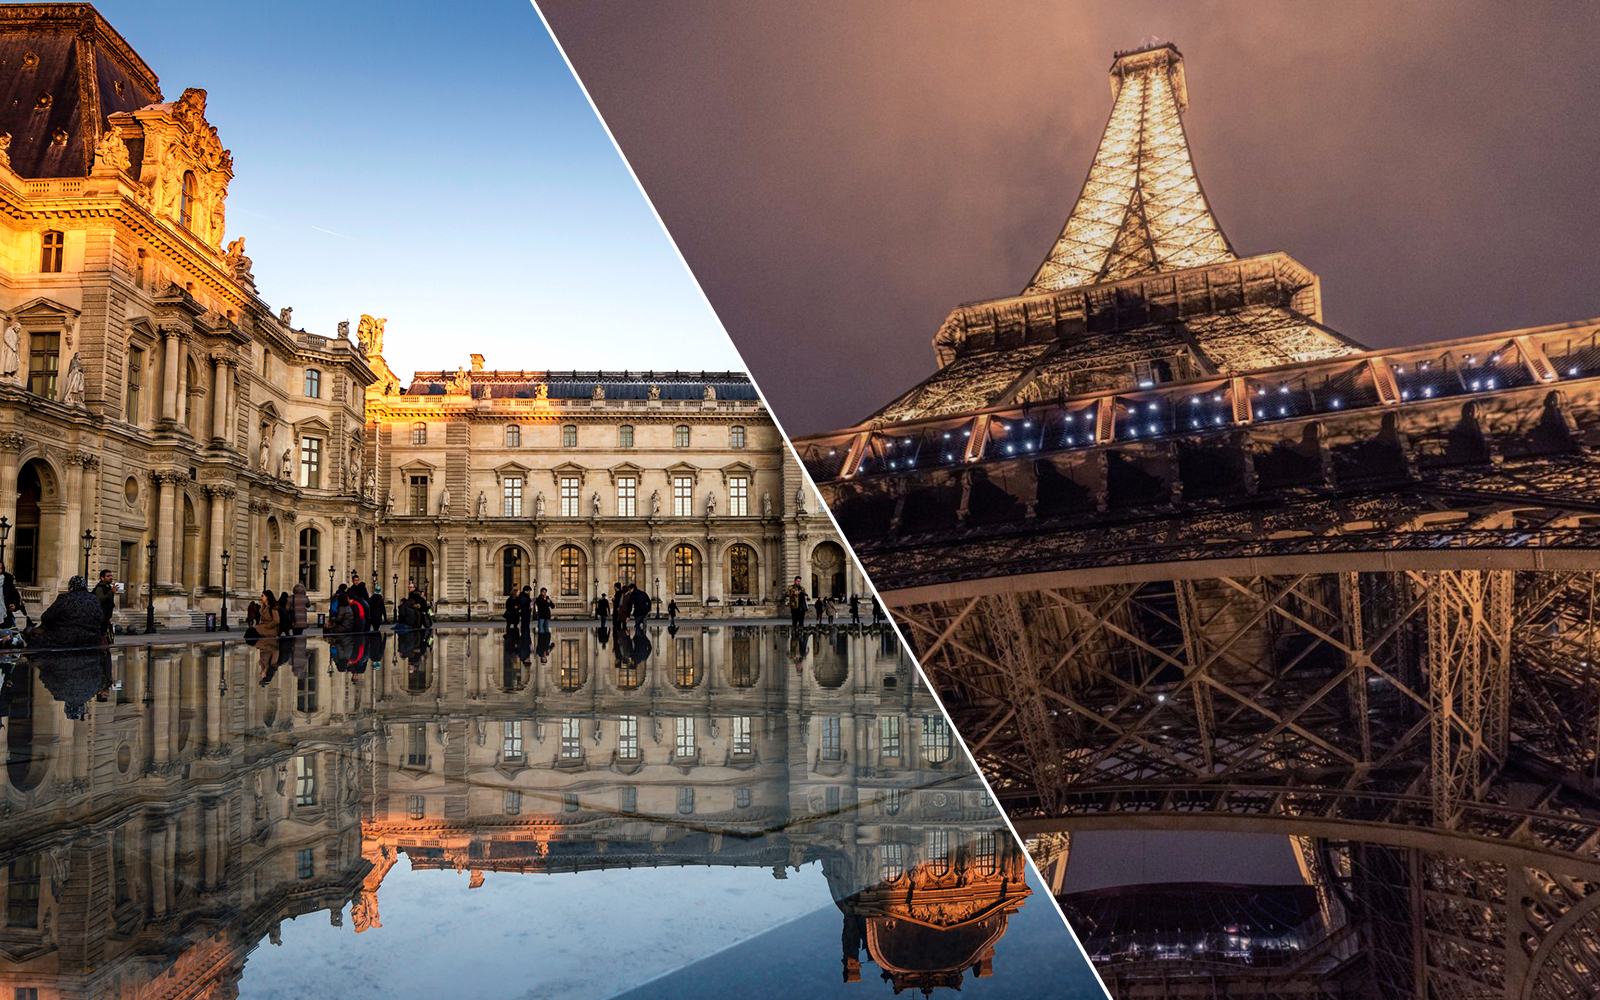 Le Louvre Billet Coupe File Eiffel Tower Skip The Line And Louvre Museum Dedicated Entry Tickets